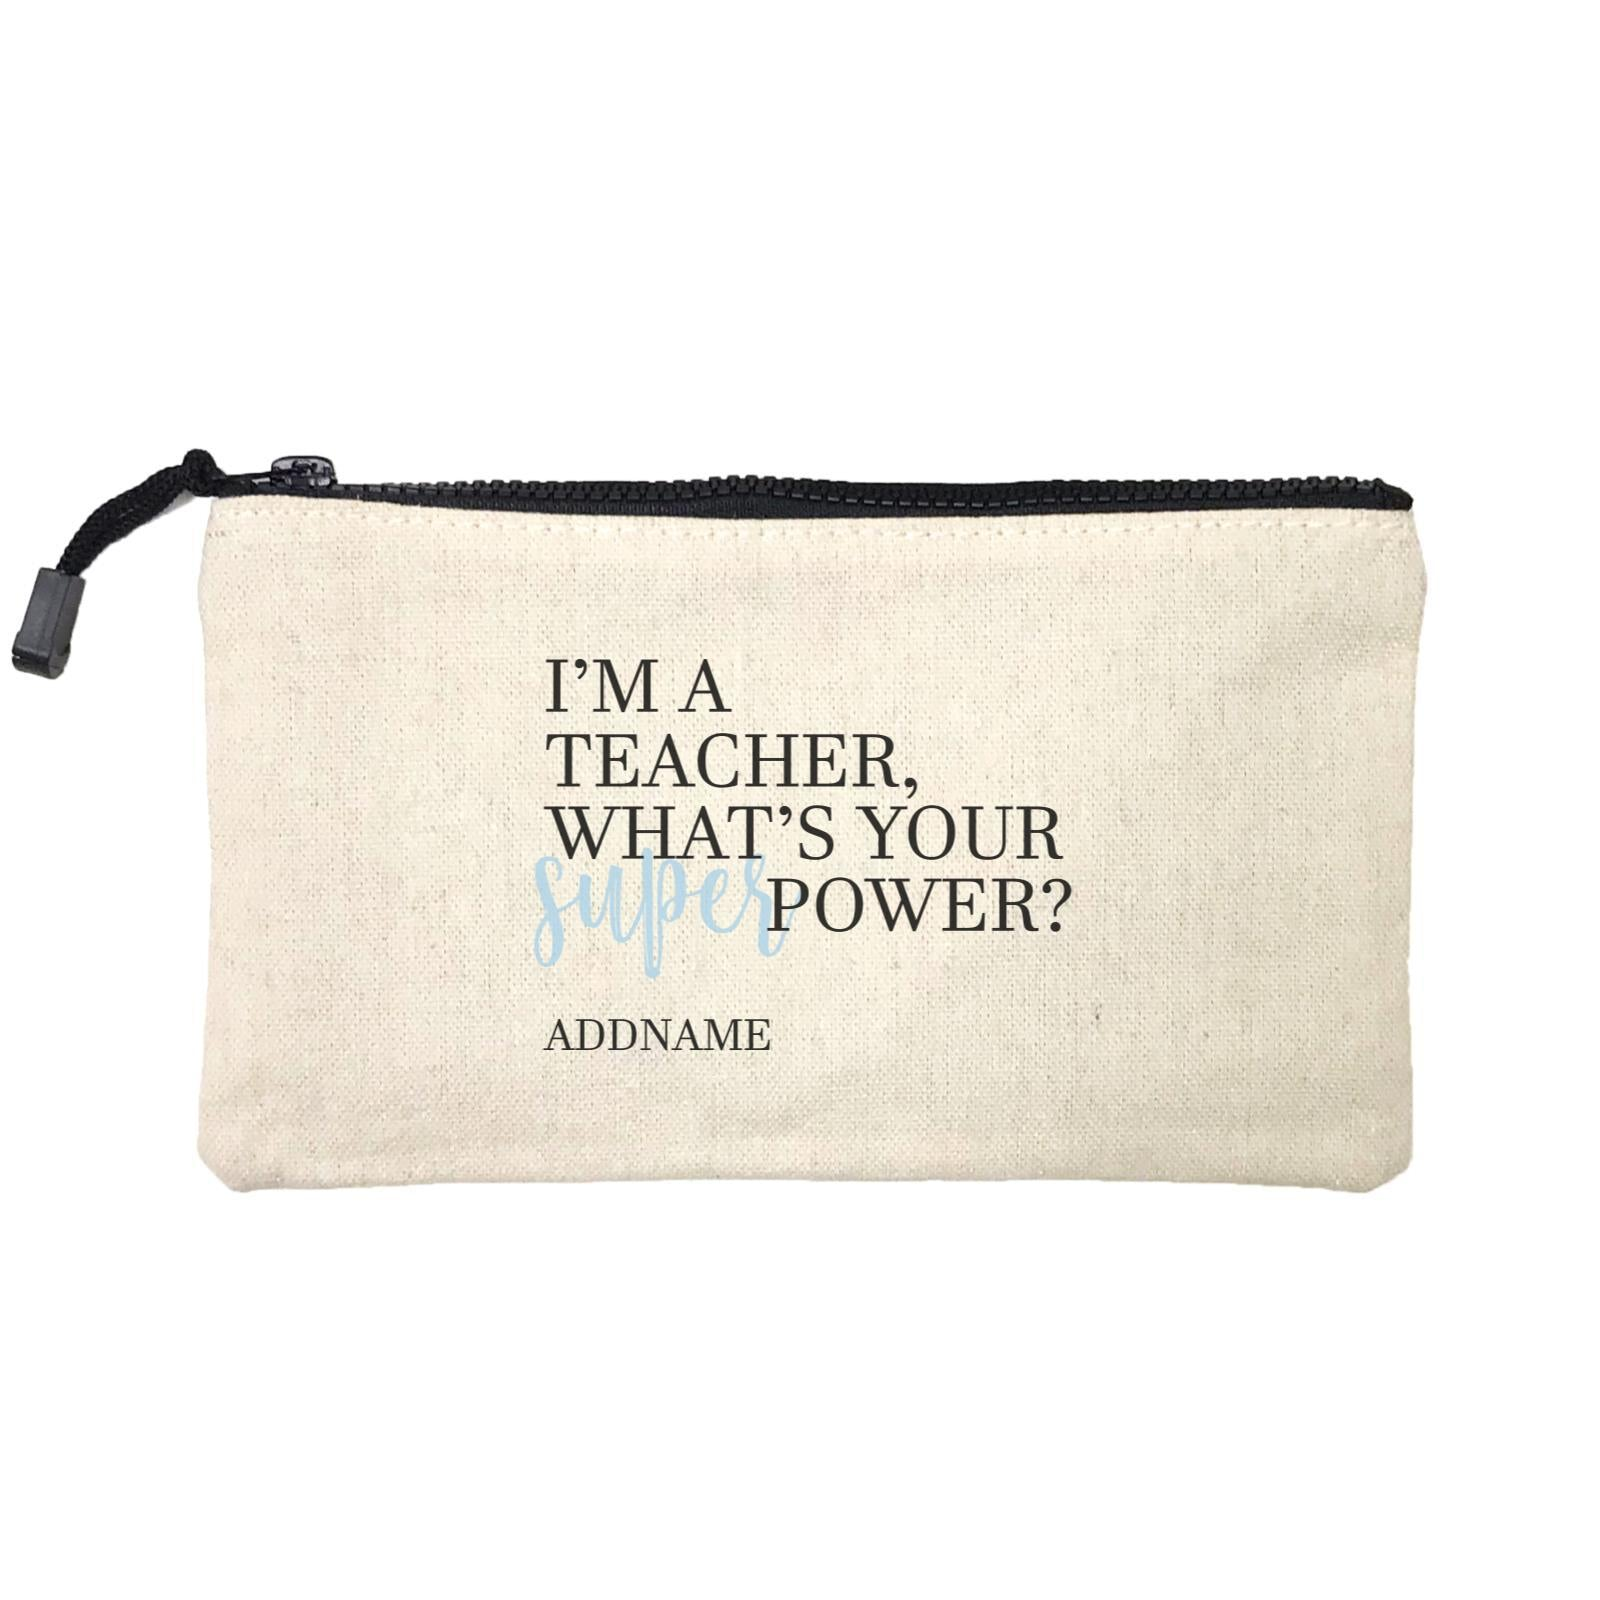 Super Teachers Blue I'm A teacher What's Your Superpower Addname Mini Accessories Stationery Pouch